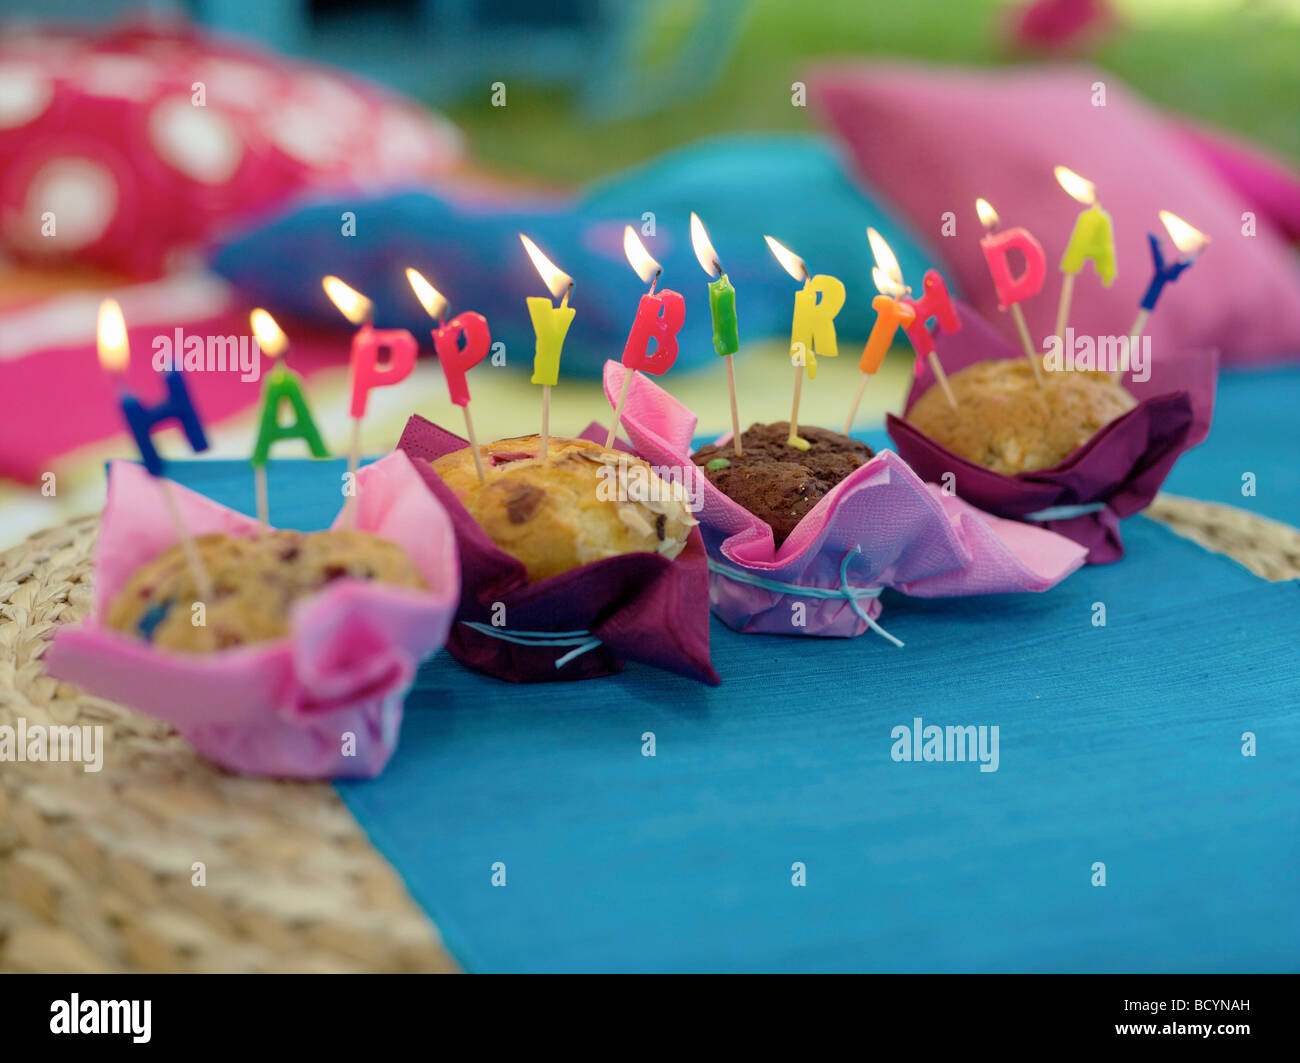 Cakes Saying Happy Birthday With Candles